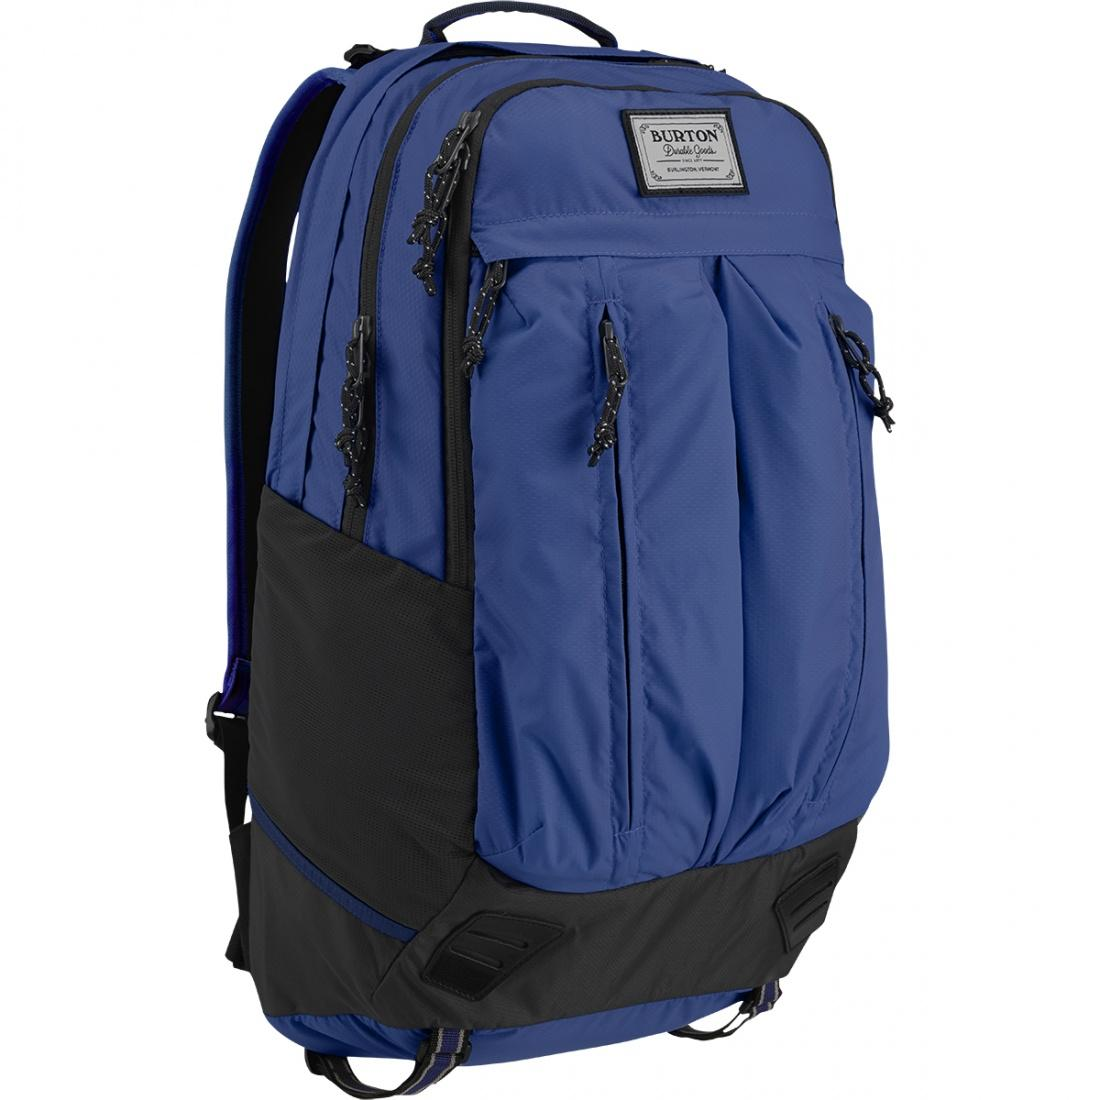 Burton Рюкзак BRAVO PACK (, GRY HTHR DIMND RPSTP, , , FW17) burton рюкзак burton curbshark pack grape crush dmnd rip 26 л